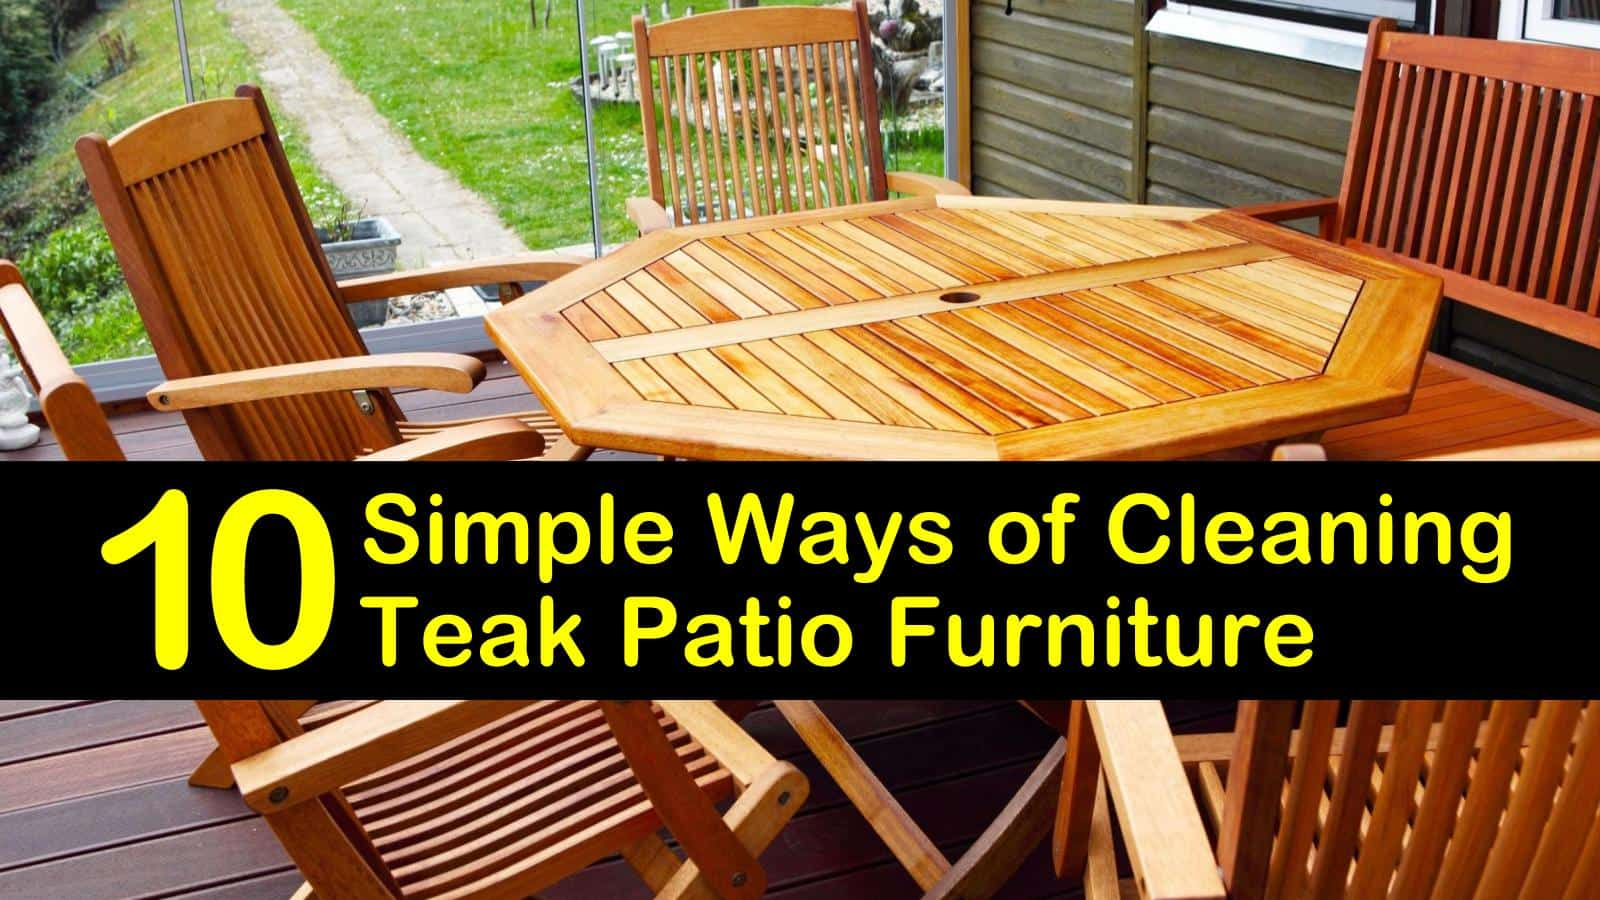 Cleaning Teak Patio Furniture